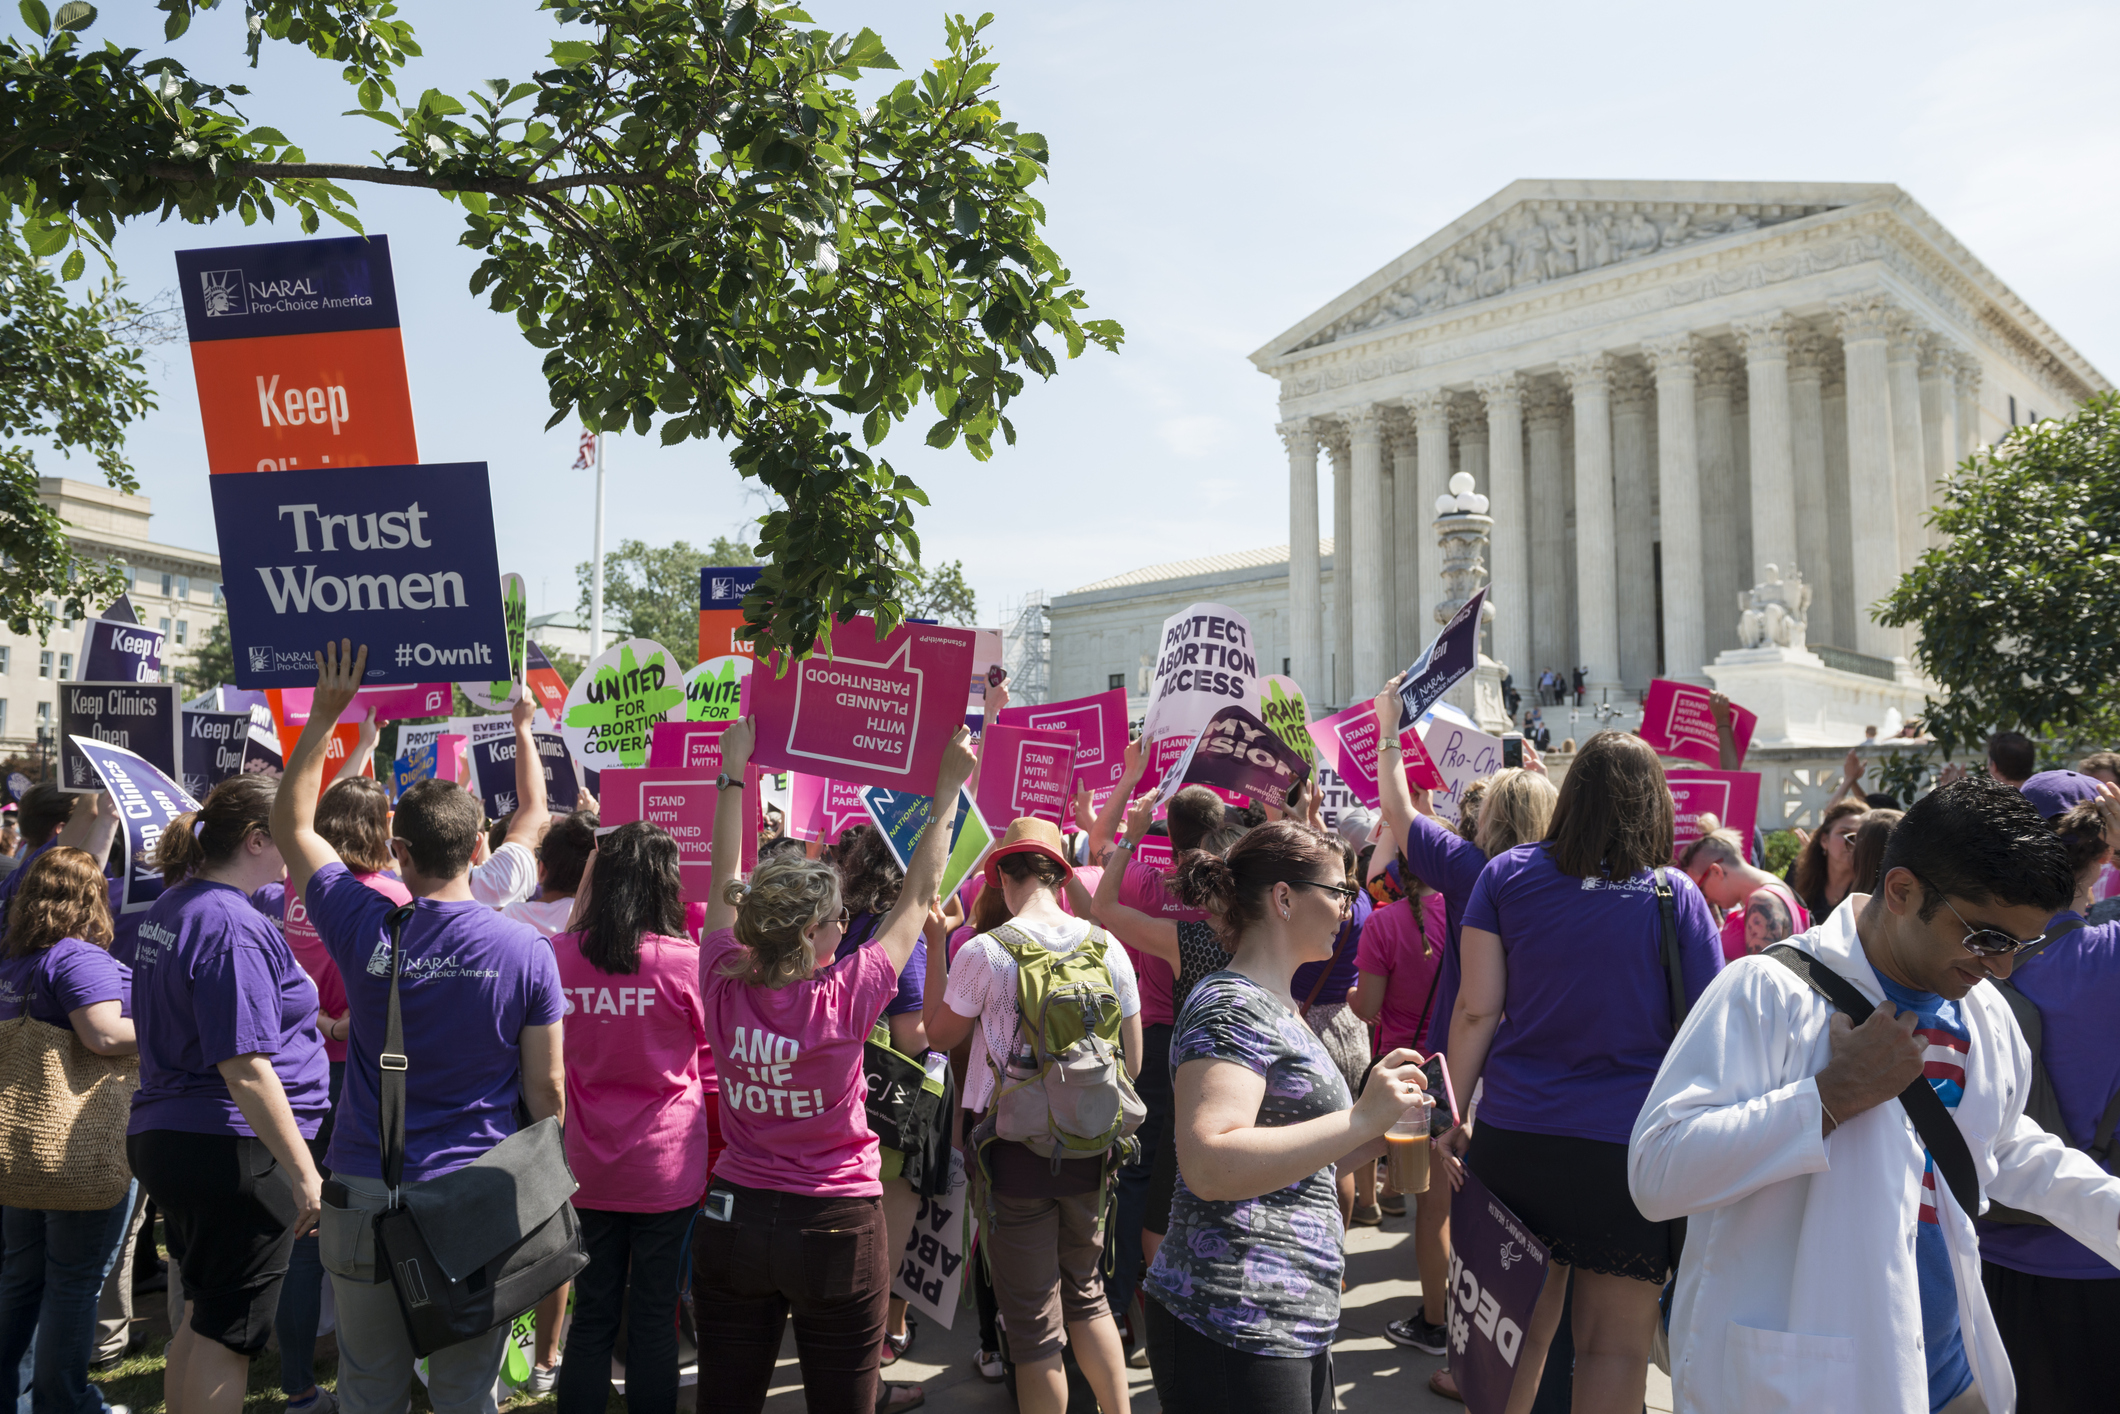 Living in Damage Control Mode: A Look at Planned Parenthood's PR Strategy in the Age of Political Polarity